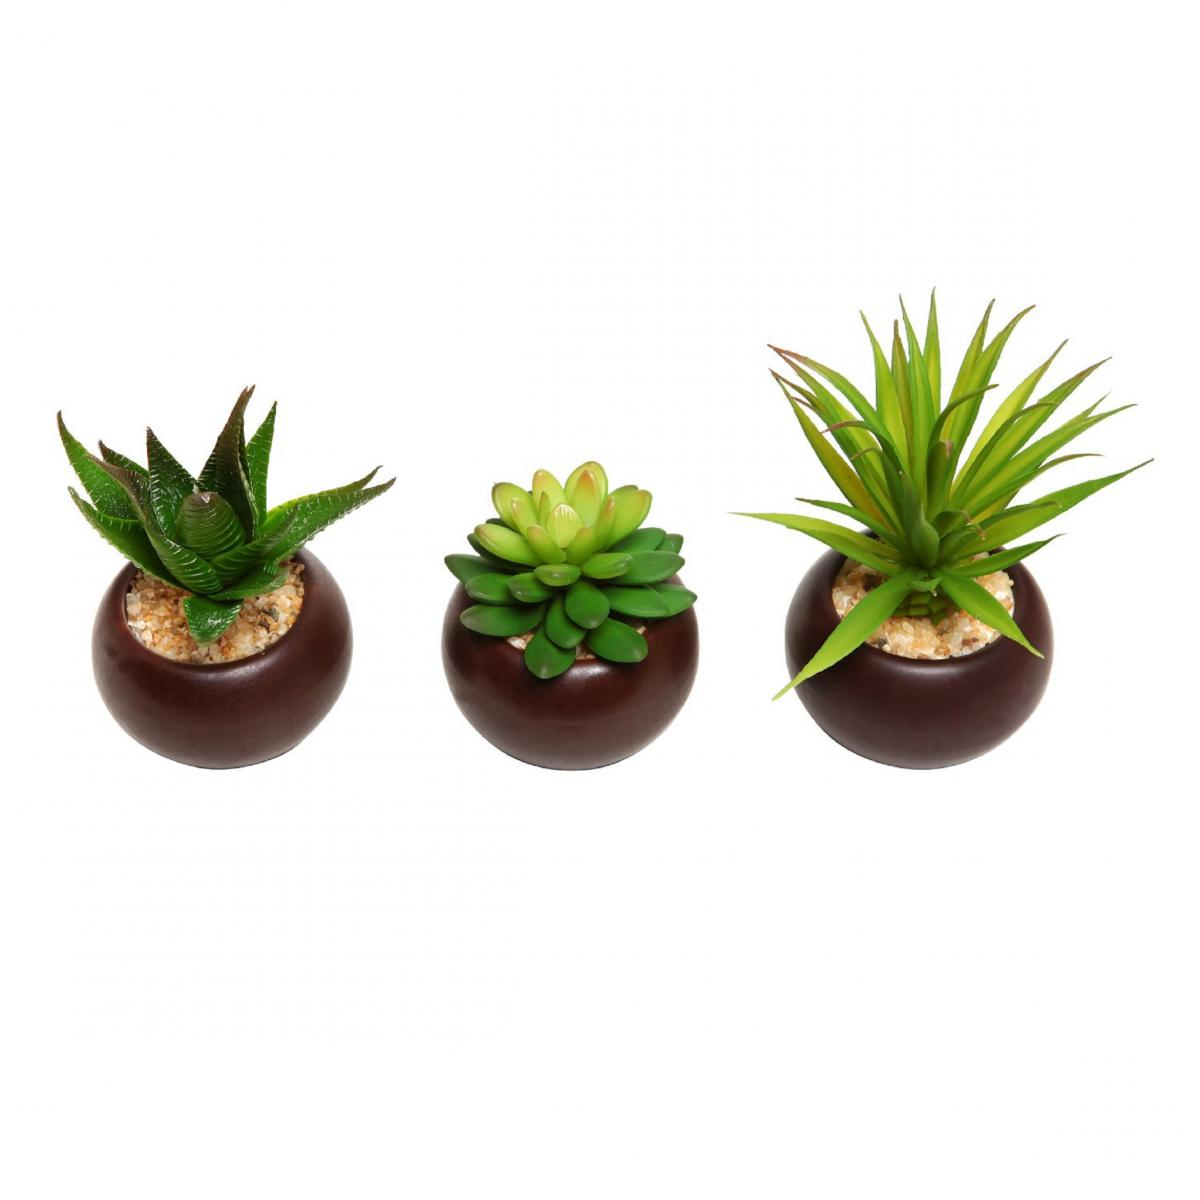 New Potted Artificial Mini Succulent Plants Set Of 3